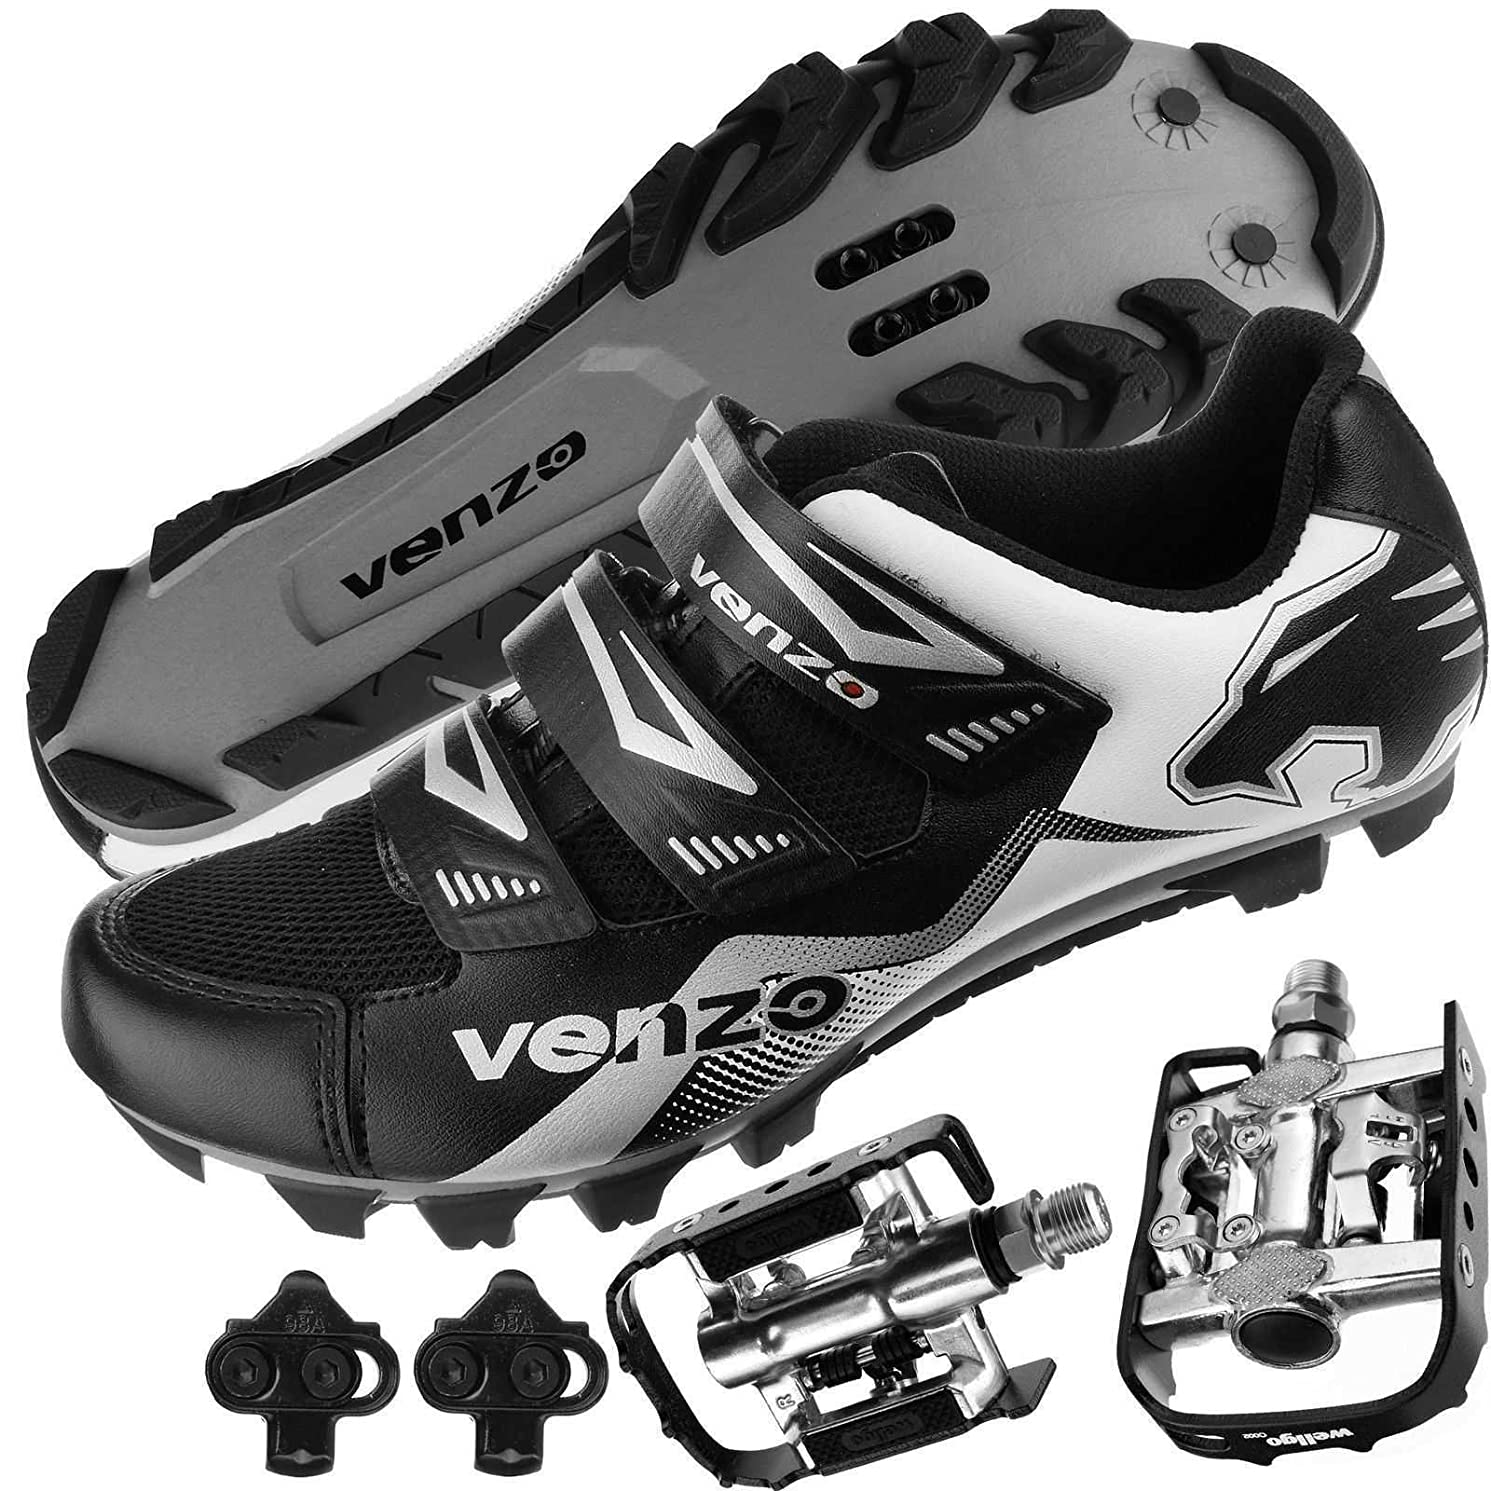 Venzo Mountain Bike Bicycle Cycling Shimano SPD Shoes + Multi-Use Pedals